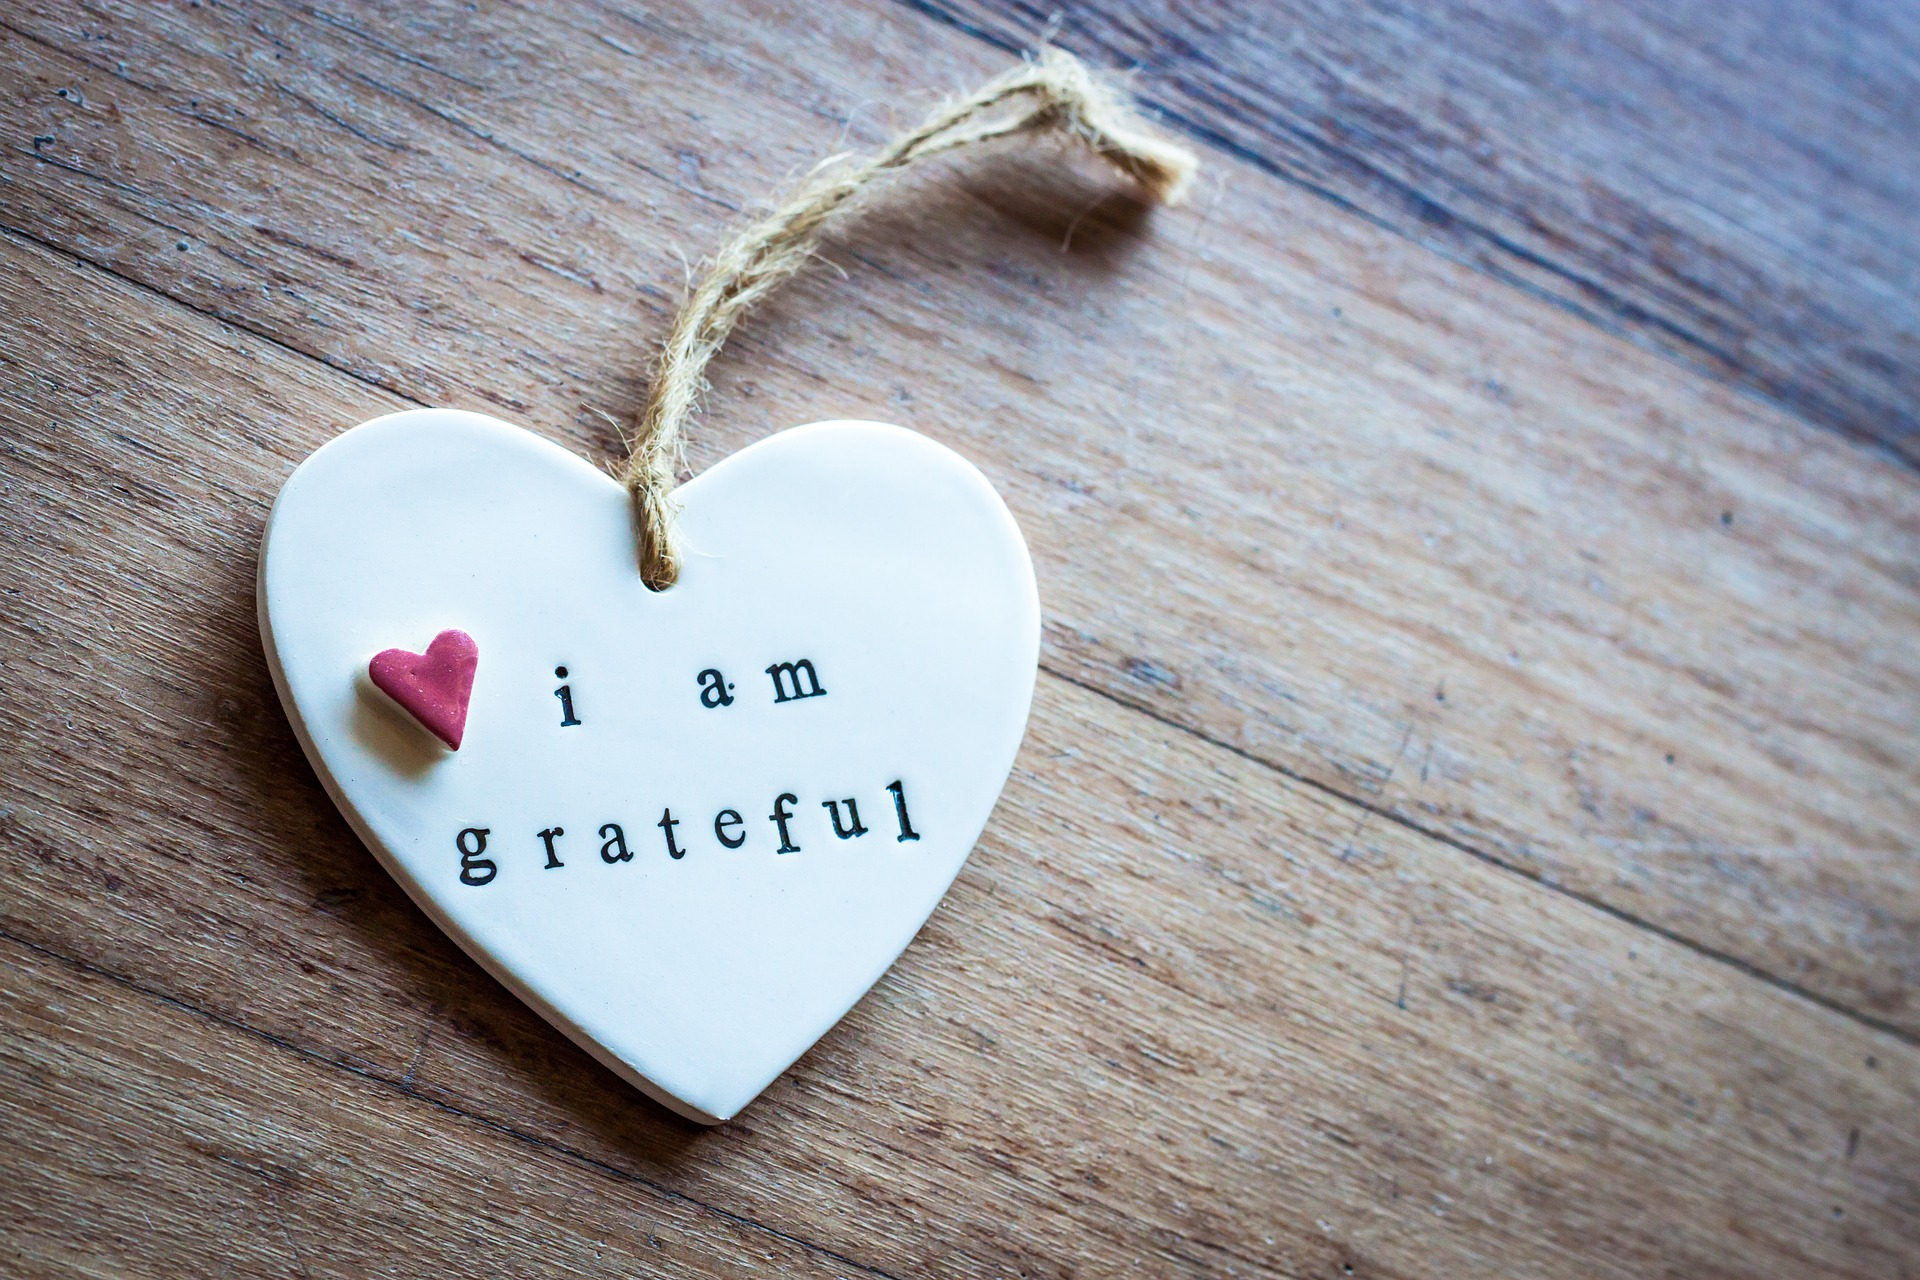 How to Overcome Disappointment with Gratitude